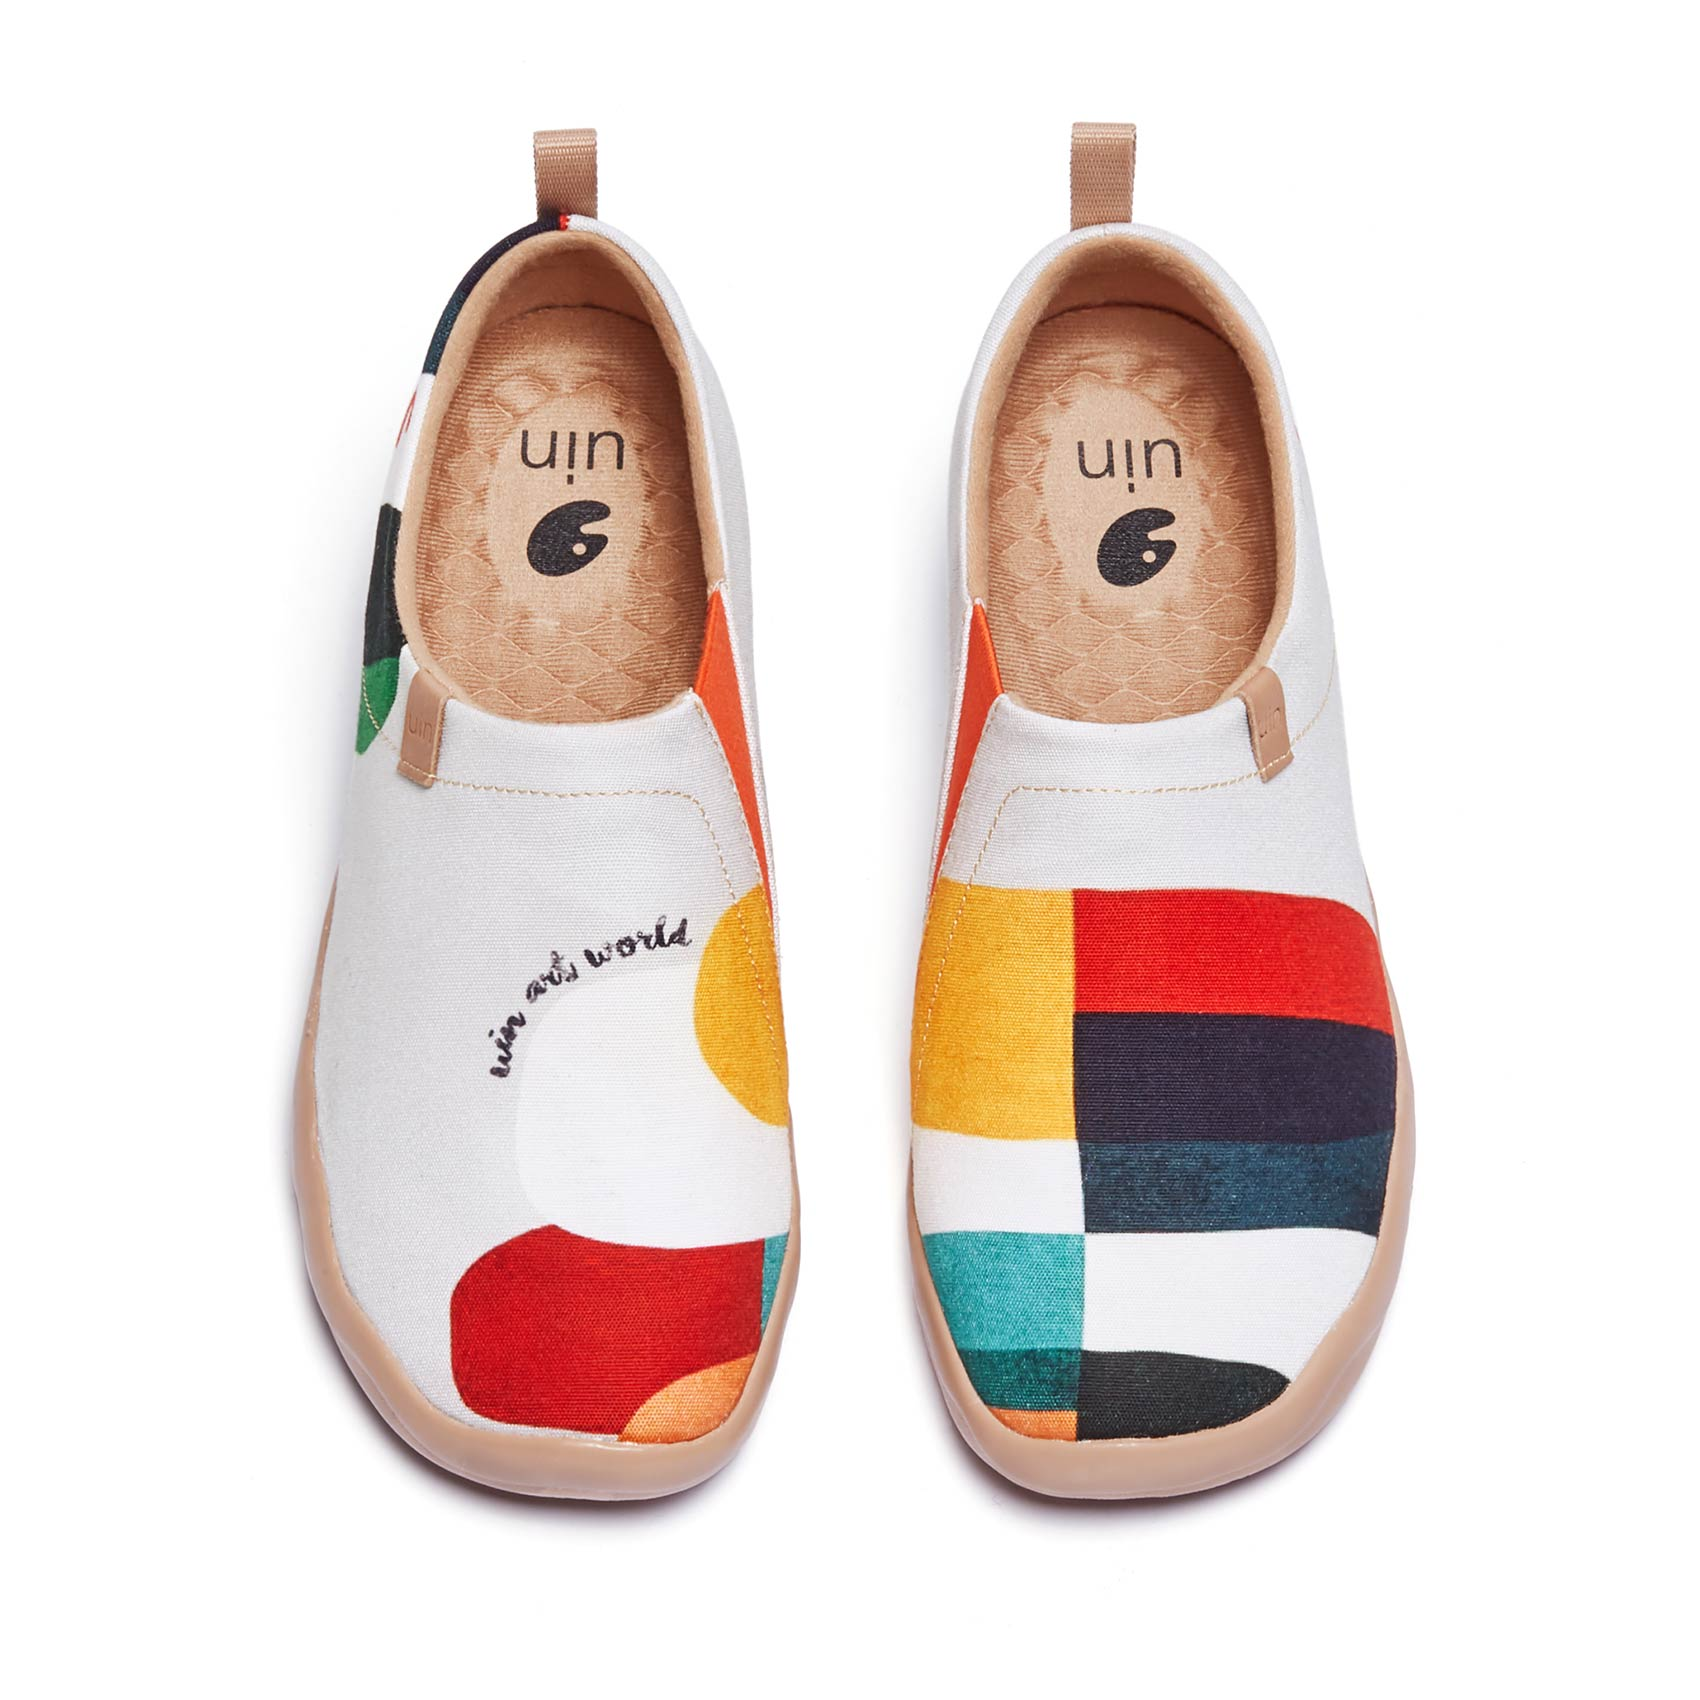 AliExpress - UIN Women's Slip Ons Canvas Lightweight Flats Sneakers Walking Casual Art Painted Travel Shoes Geometry